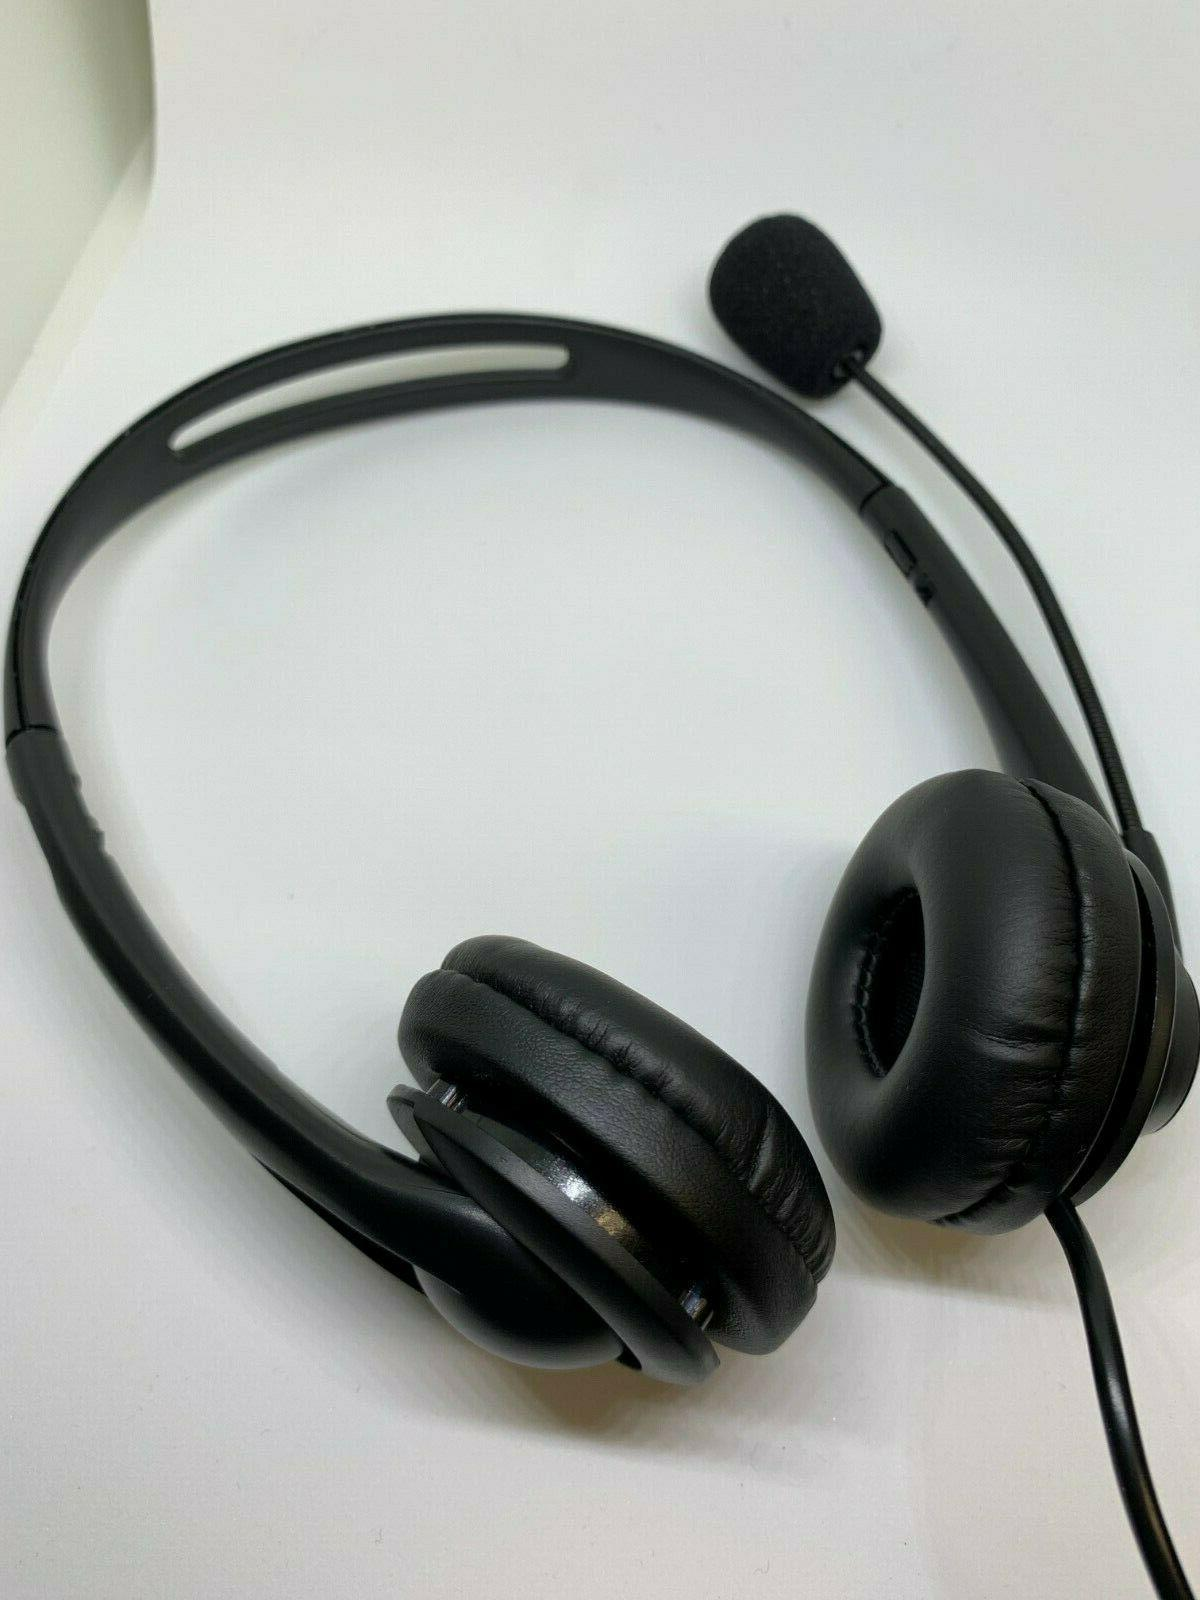 USB Cancelling Headset for Computer Chat/Call